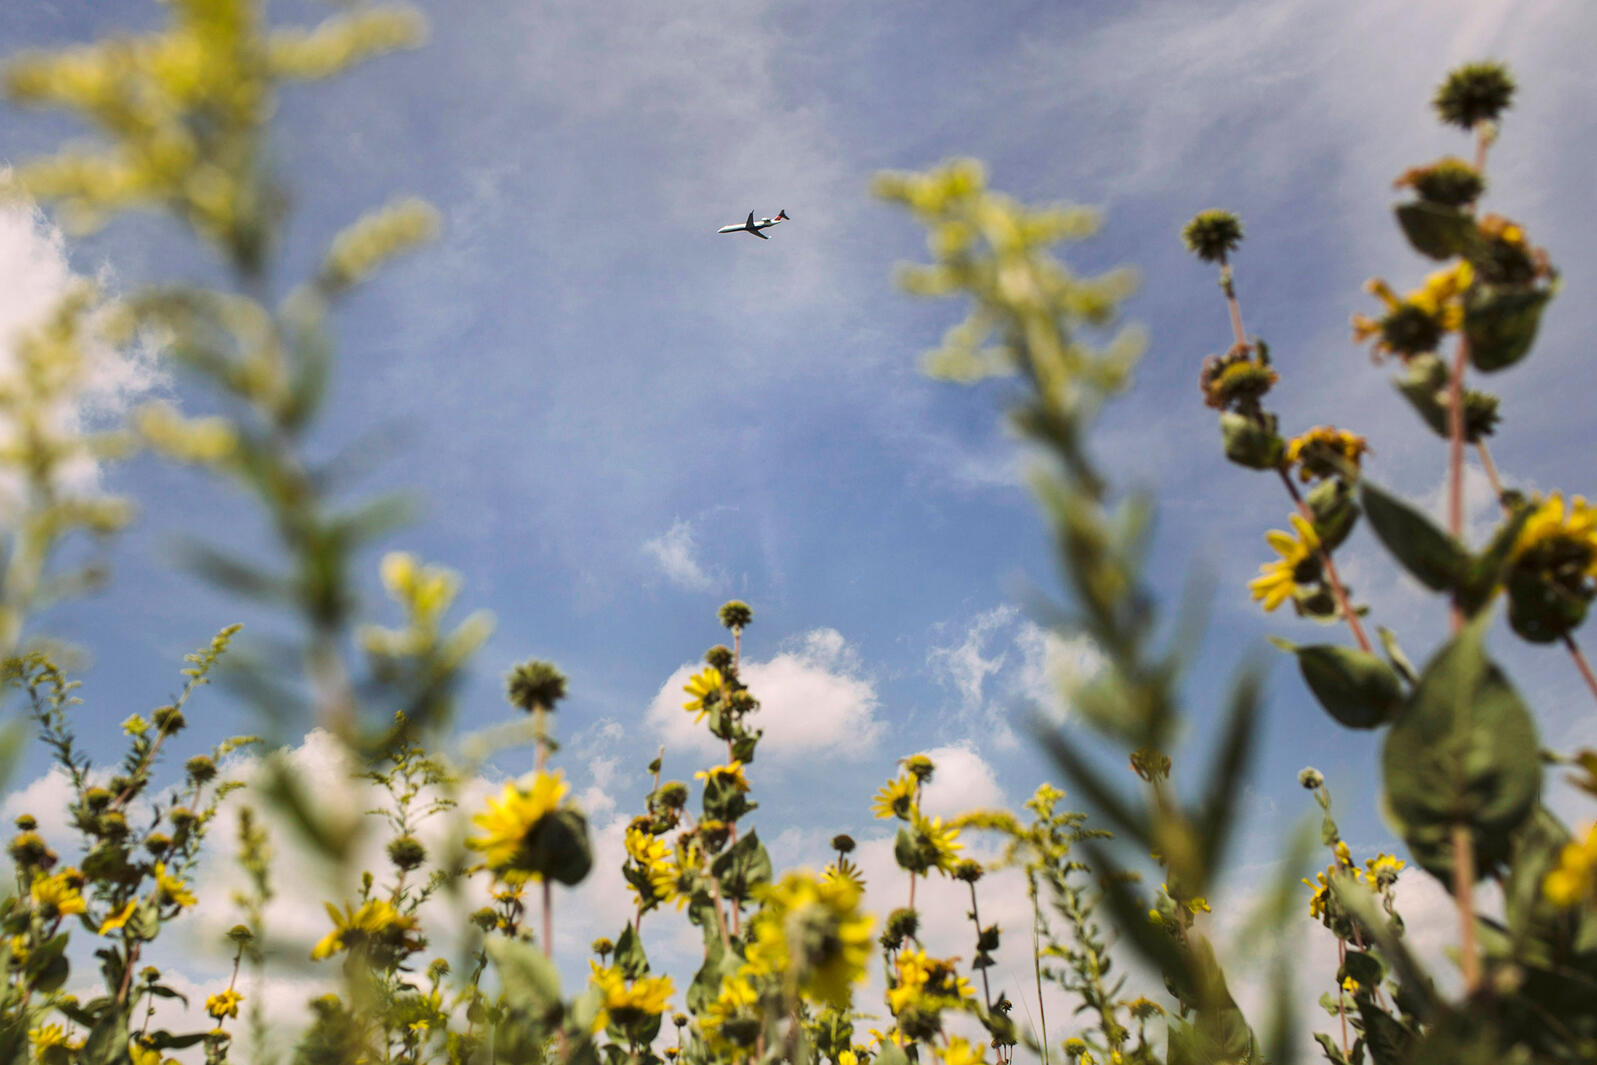 A plane flies over Knoop Prairie. Andrew Spear/The New York Times/Redux